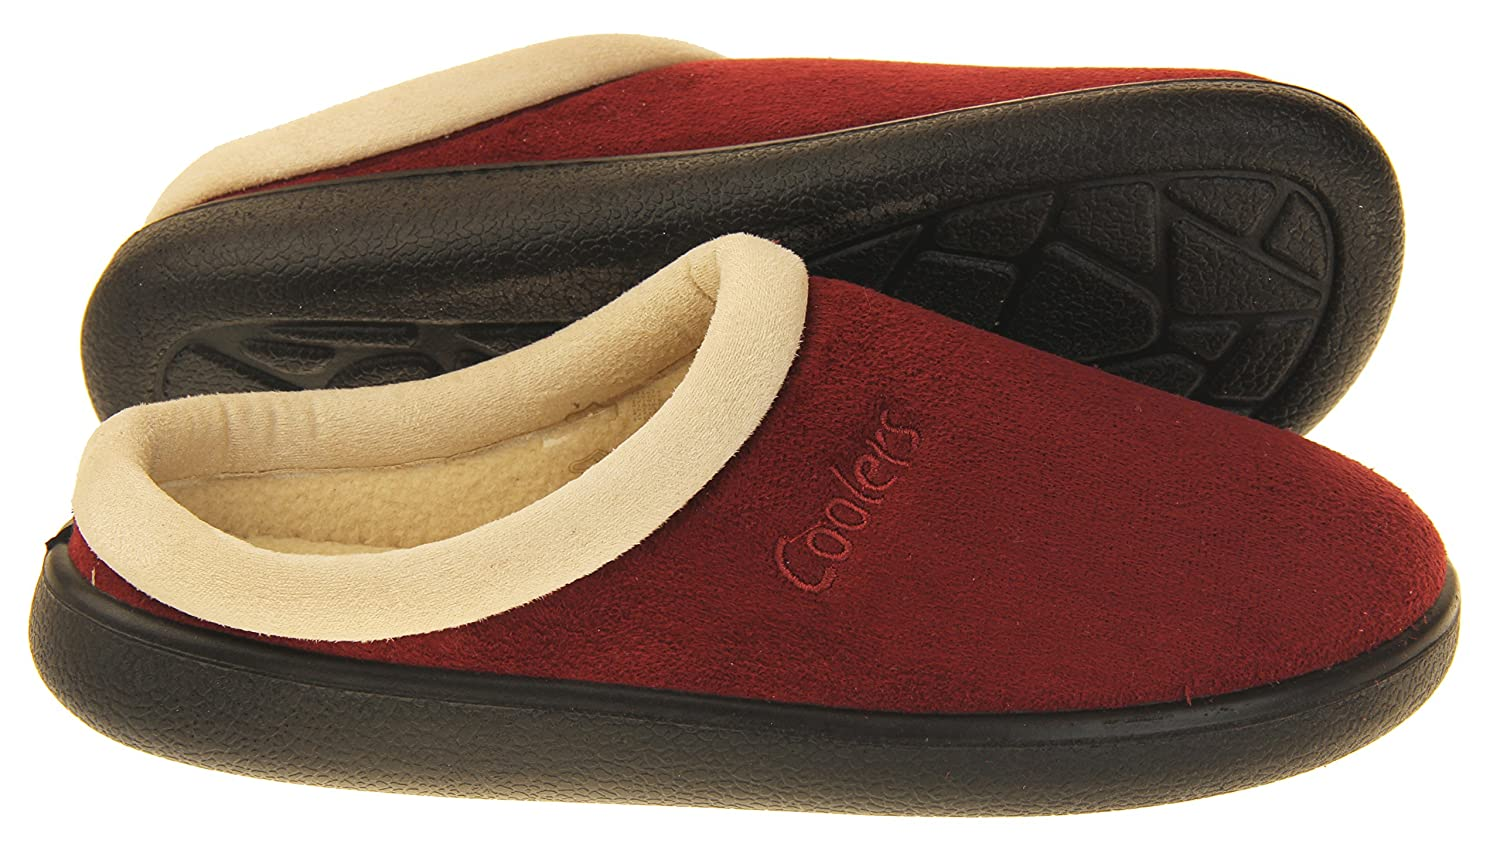 M Coolers Womens Burgundy Suede Effect Outdoor Sole Mules Slippers 6 B US